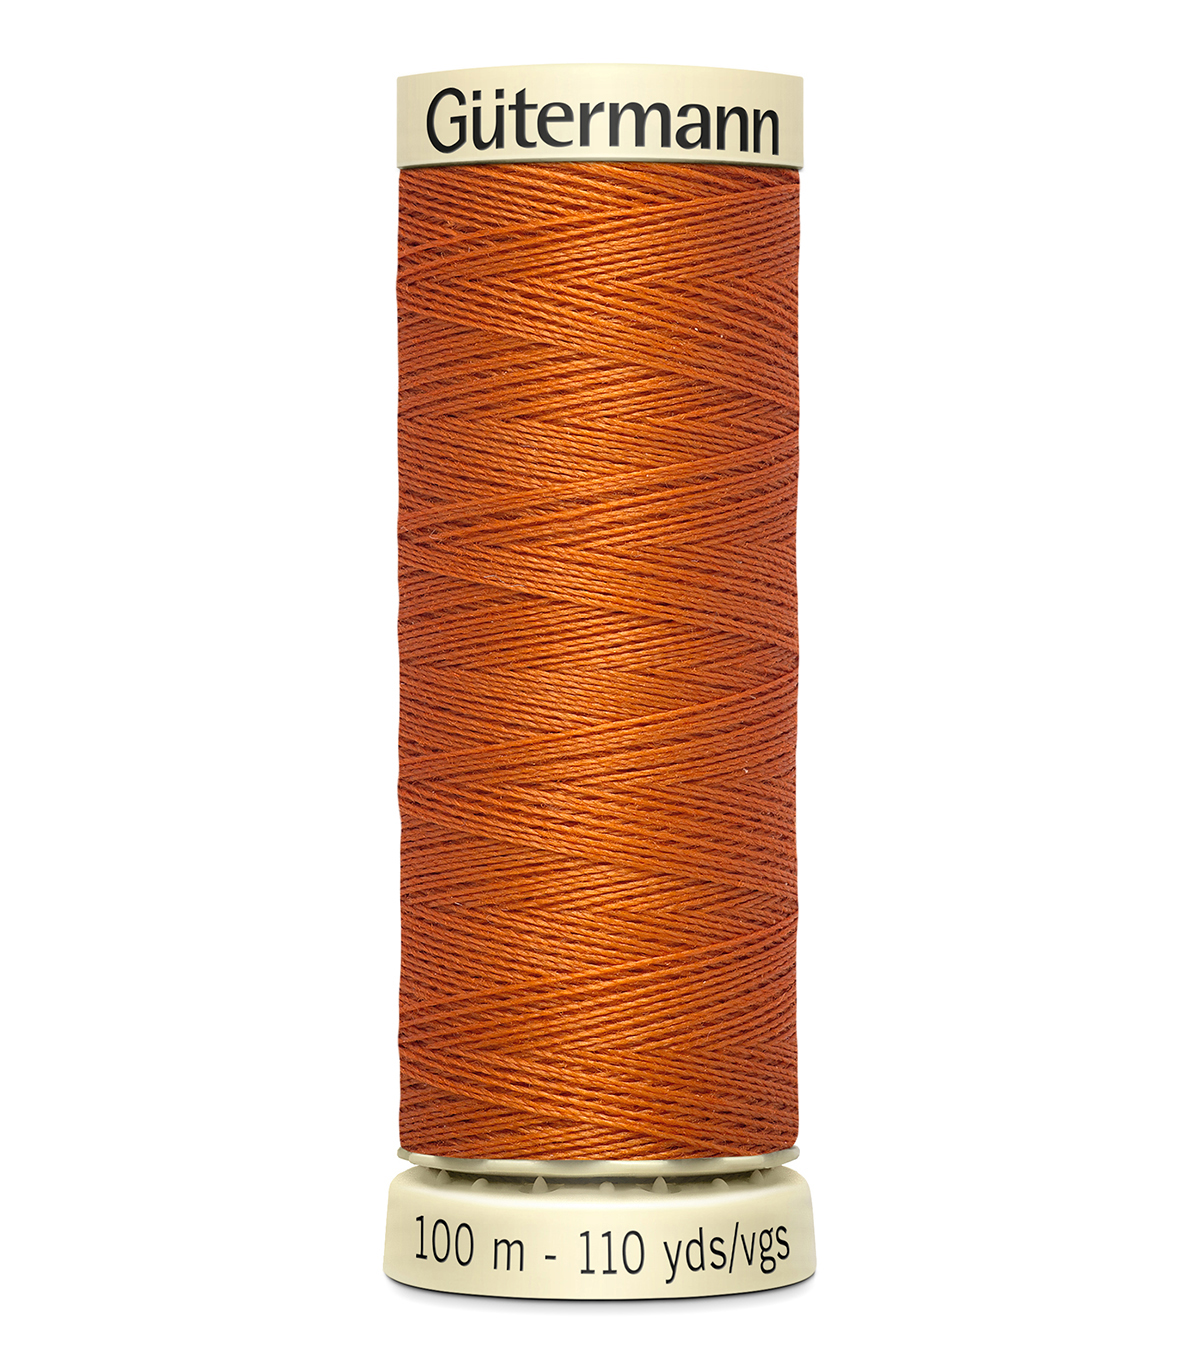 Gutermann Sew All Polyester Thread 110 Yards-Oranges & Yellows , Carrot